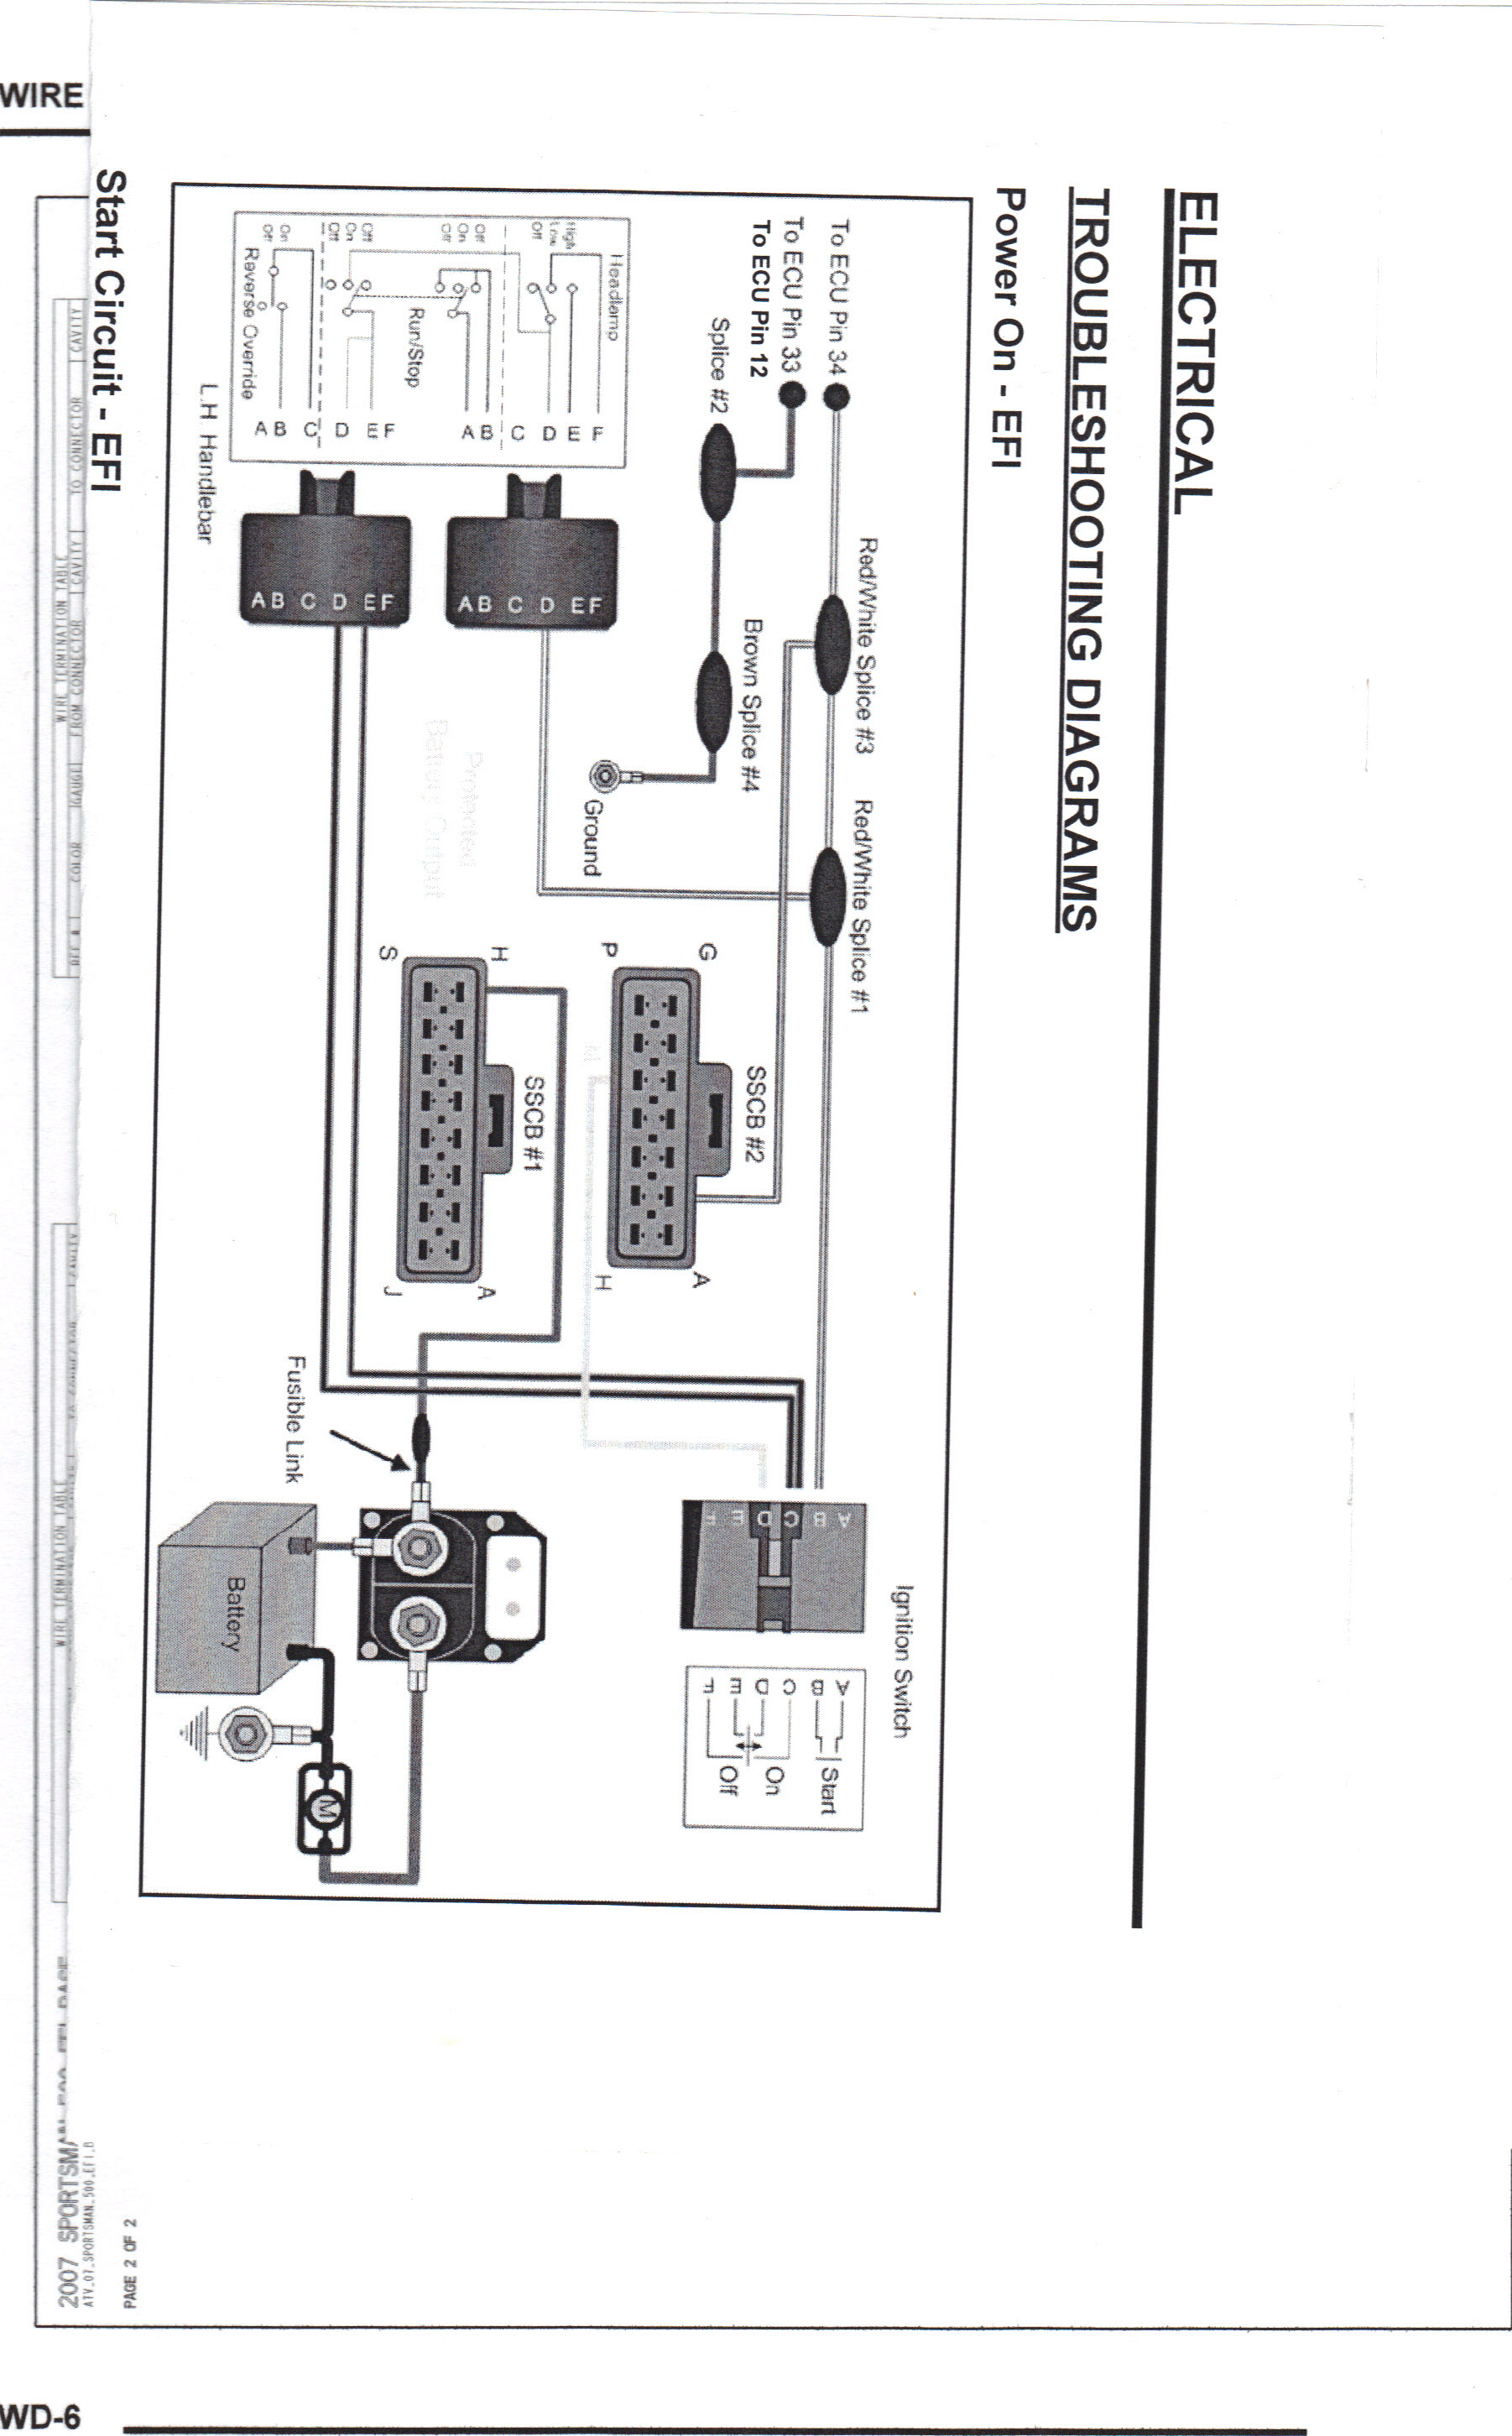 68AAF 2006 Polaris Sportsman 600 Wiring Diagram | Wiring LibraryWiring Library